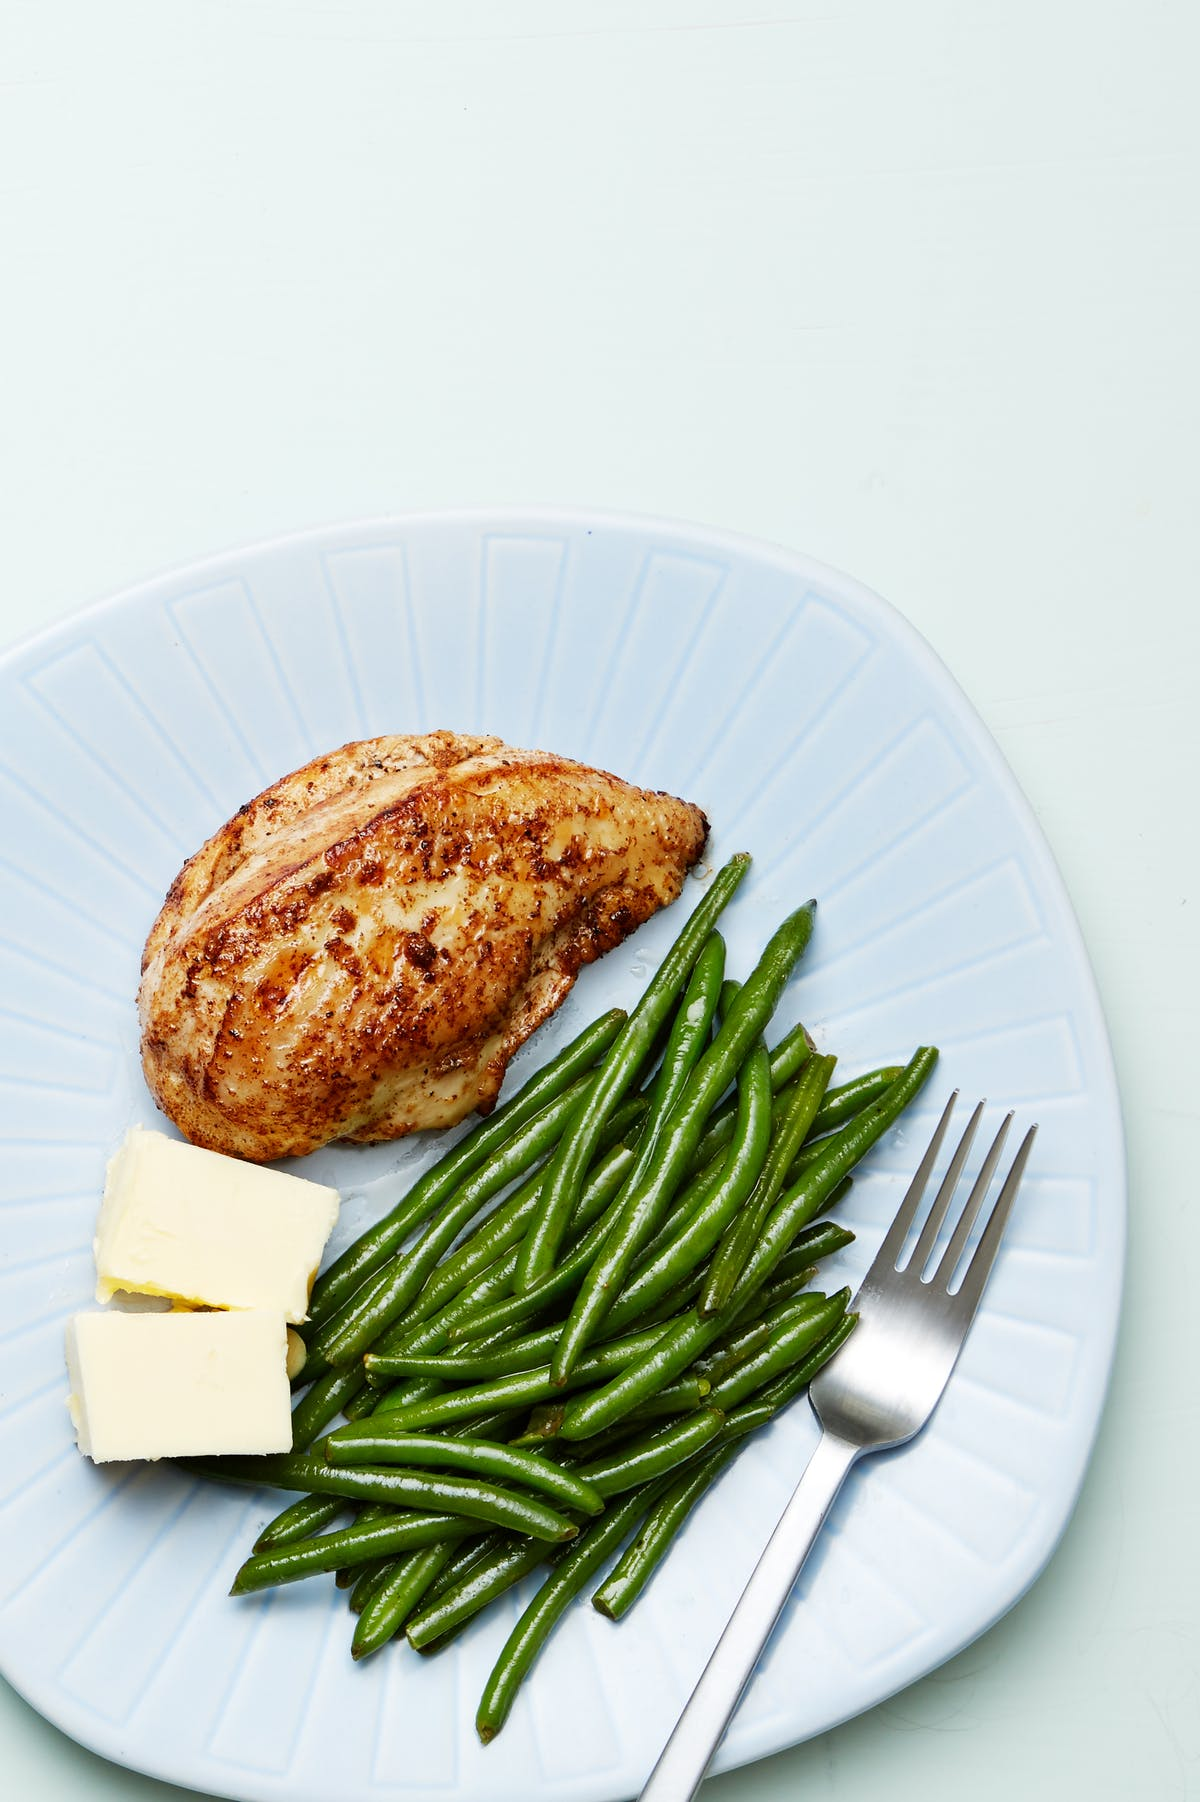 Keto chicken and green beans plate diet doctor keto chicken and green beans plate forumfinder Images